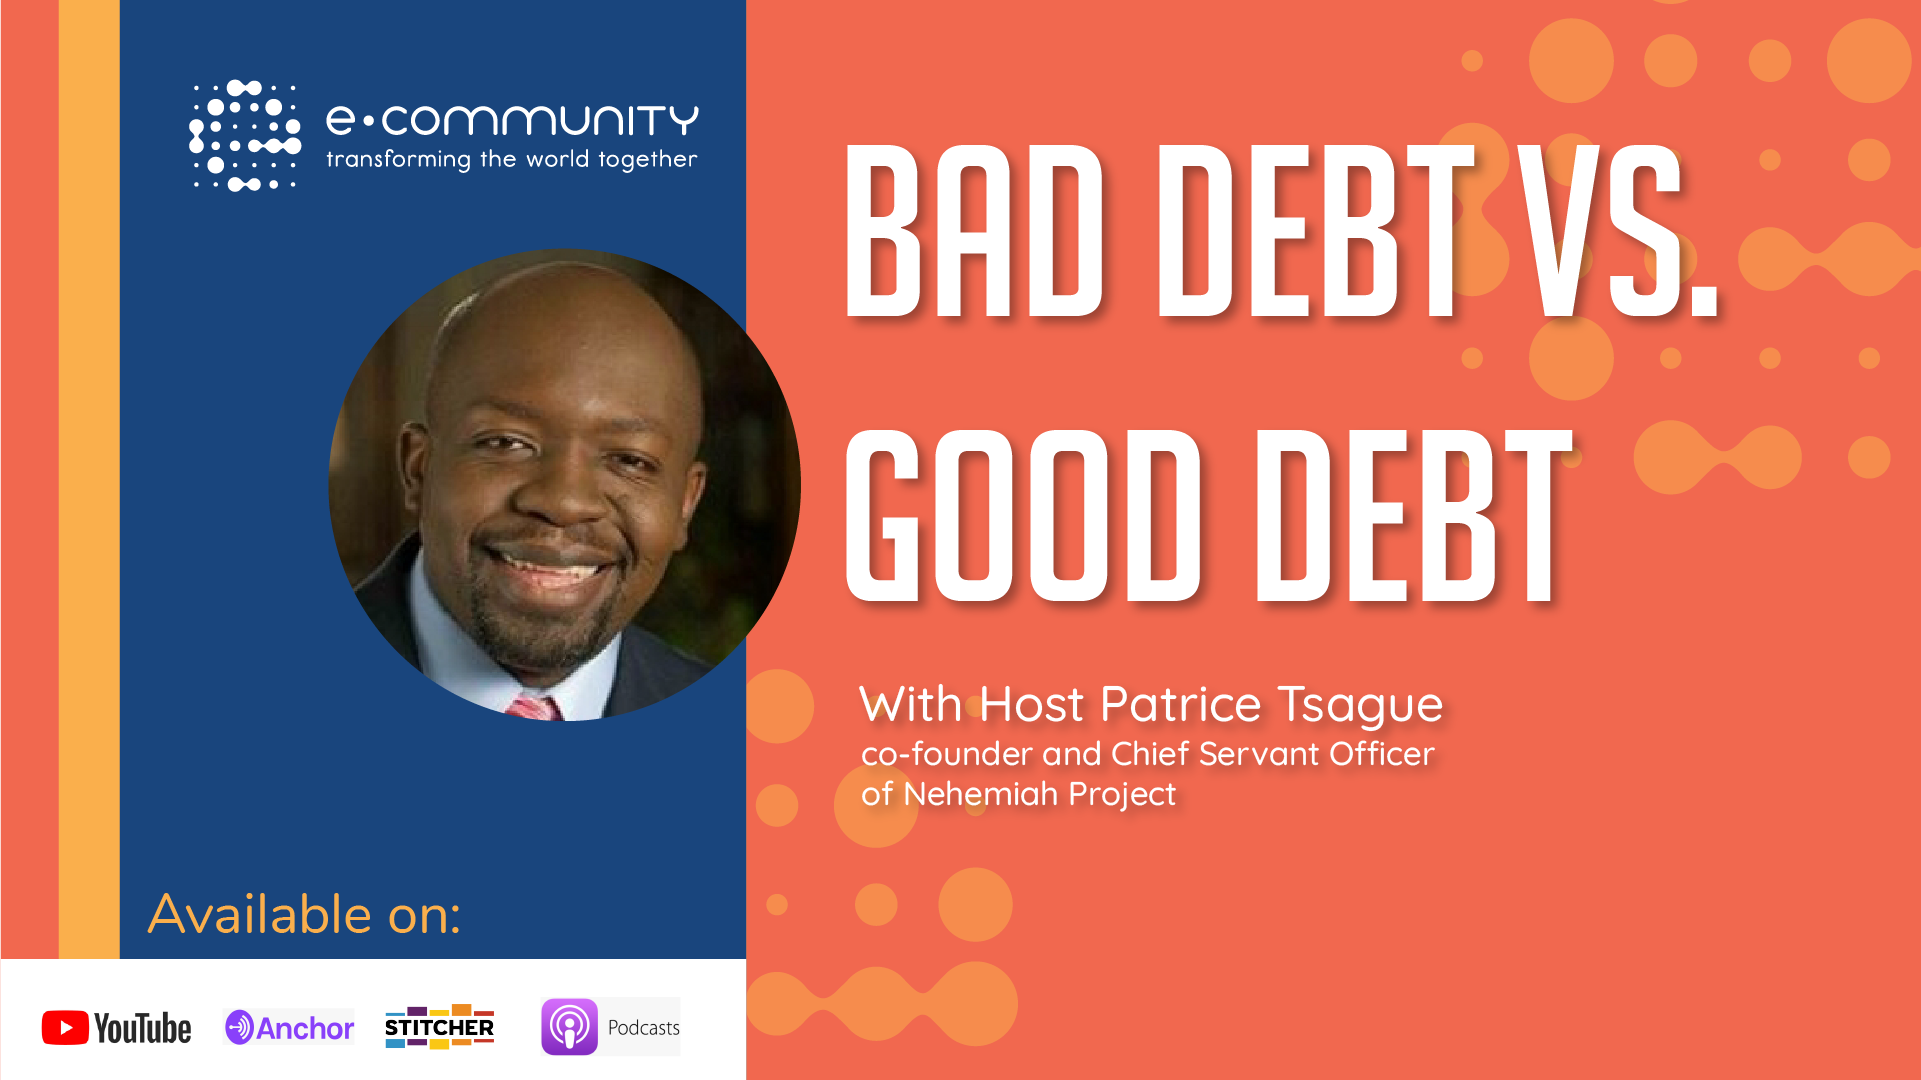 Bad Debt vs. Good Debt